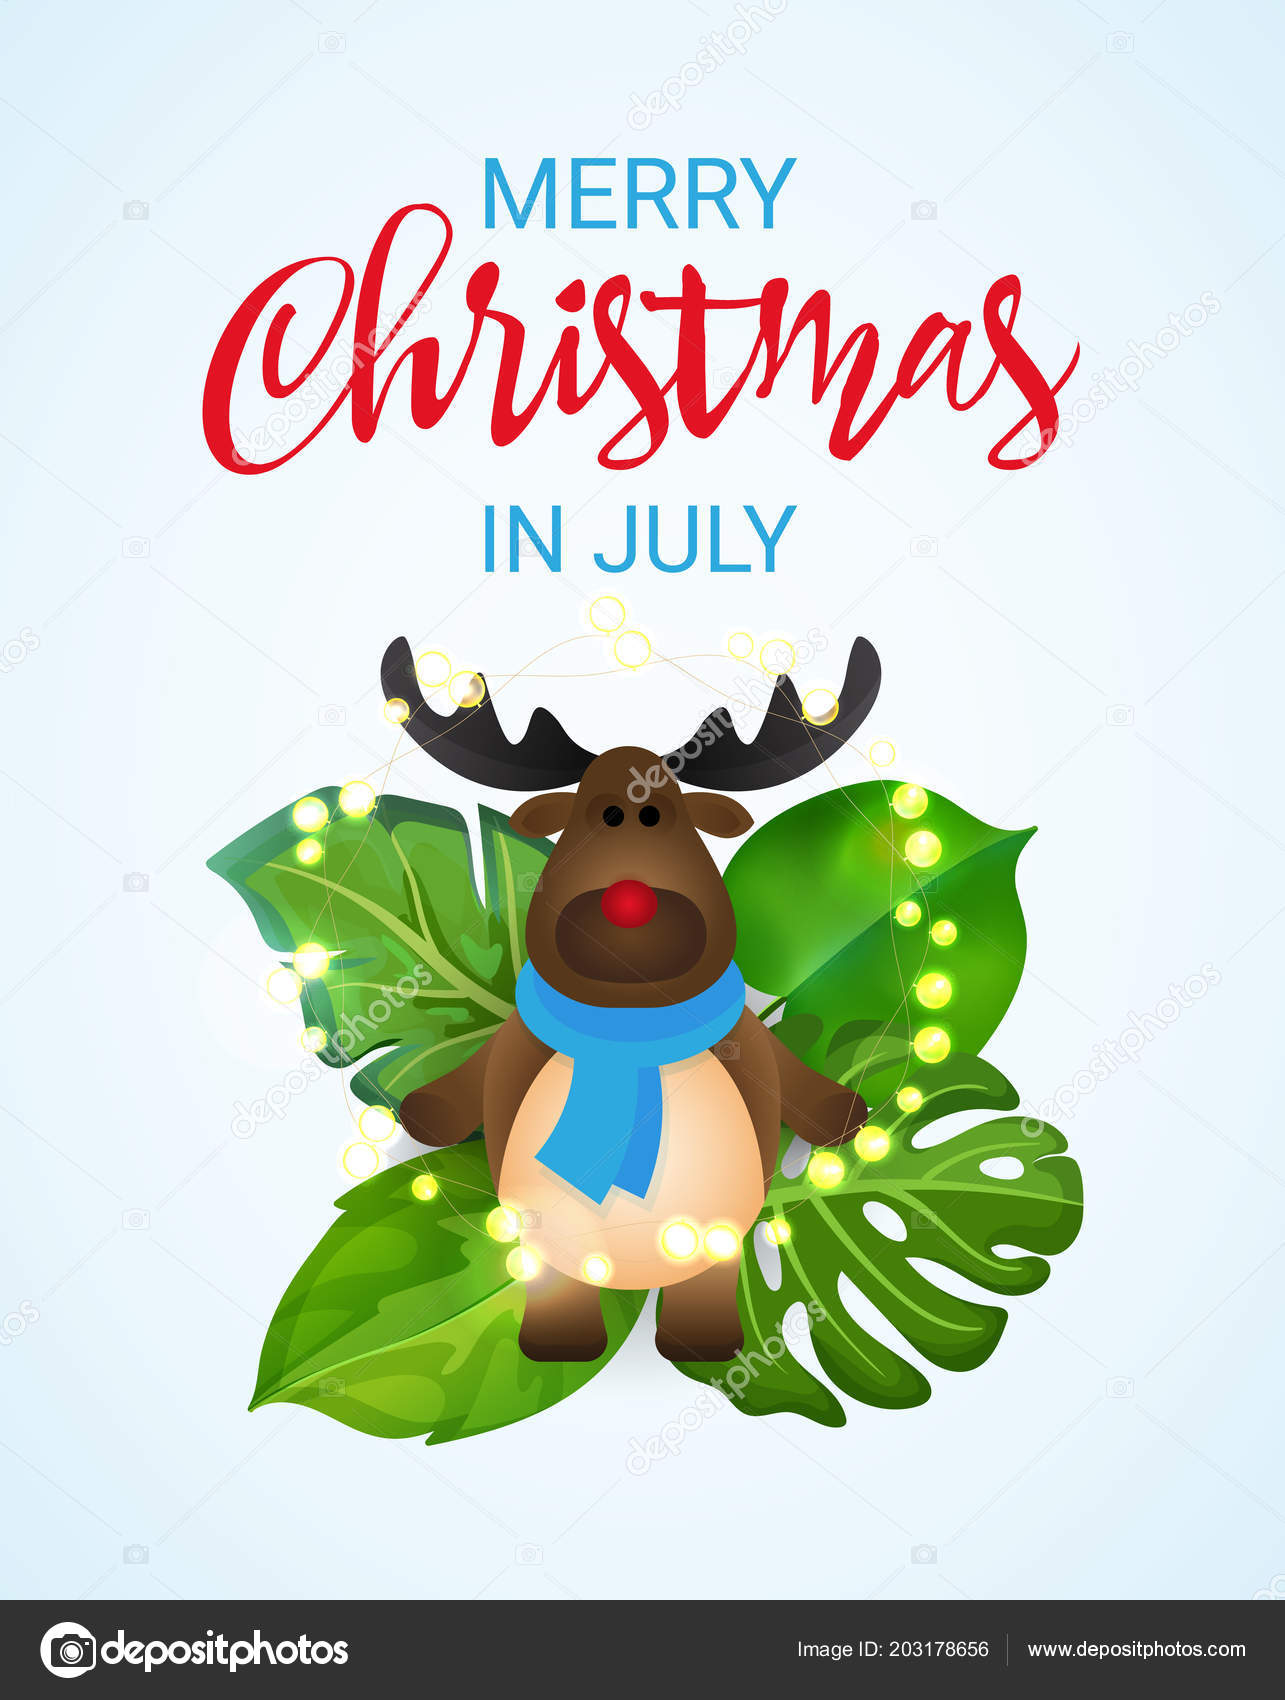 Happy Christmas In July Images.Merry Christmas In July Greeting Banner With Cartoon